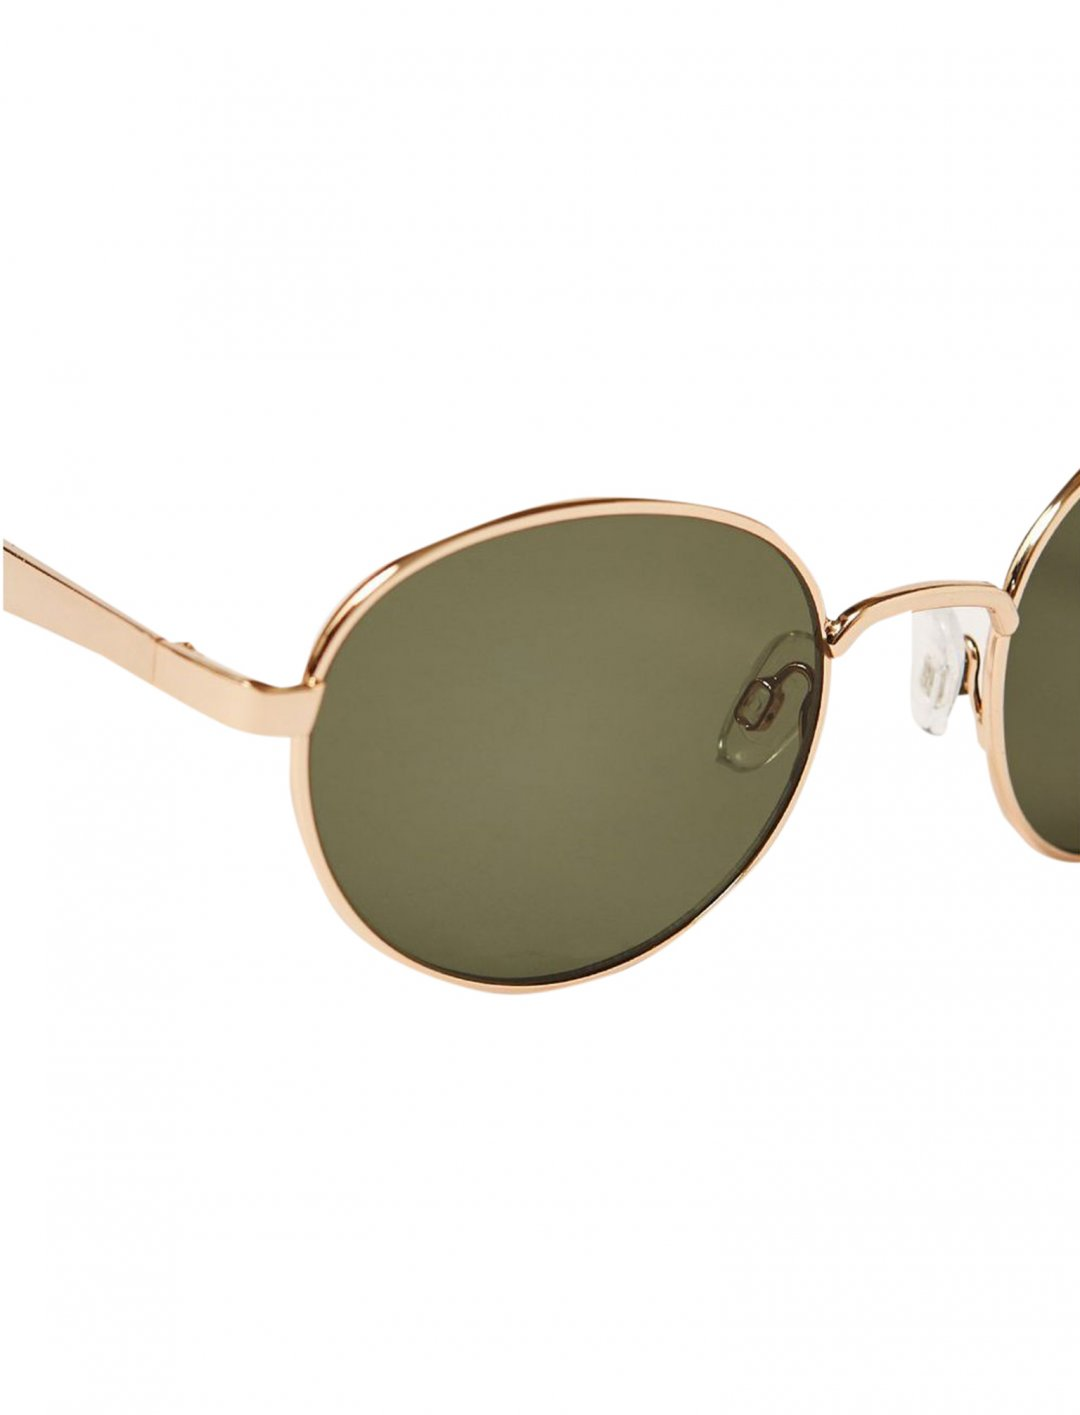 "Topman Round Sunglasses {""id"":16,""product_section_id"":1,""name"":""Accessories"",""order"":15} Topman"